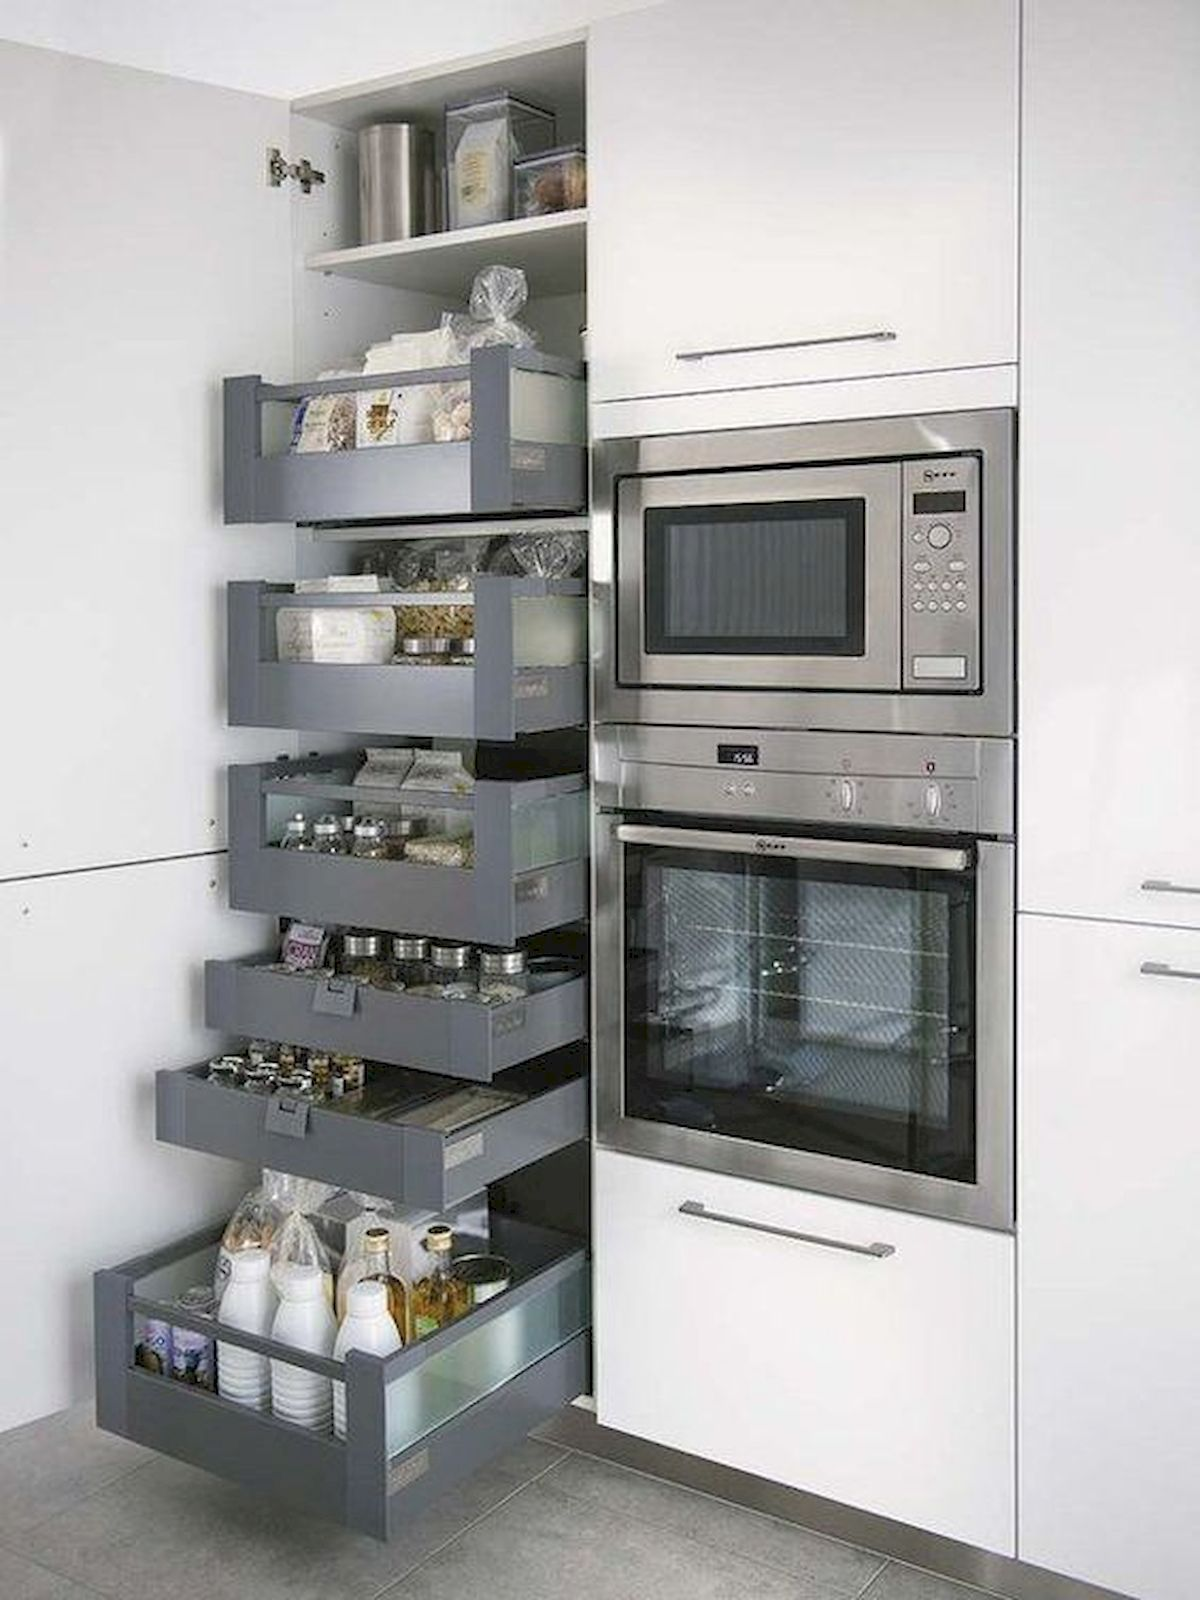 30 Awesome DIY Kitchen Cabinets Ideas (15)